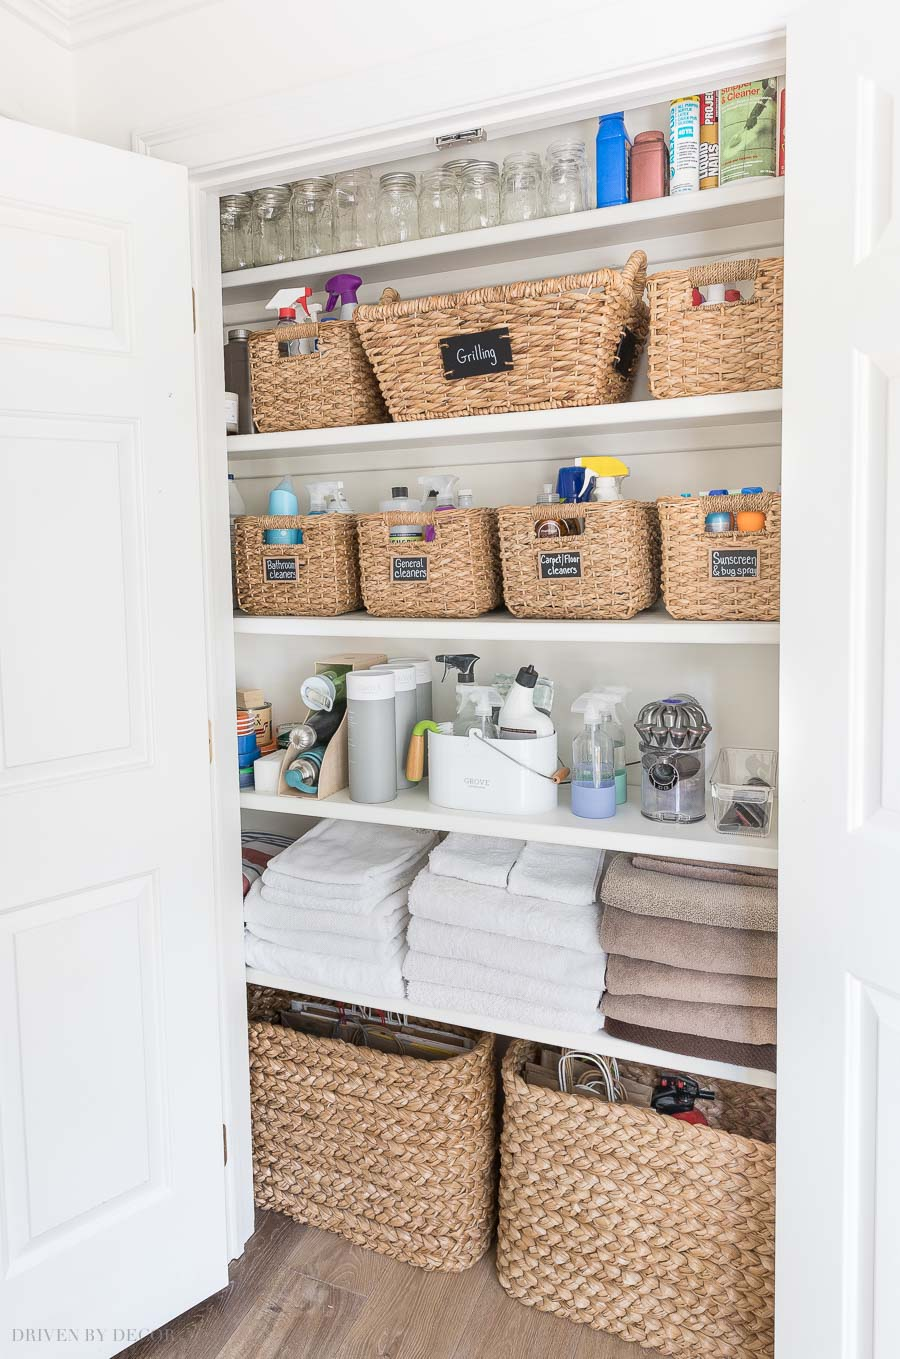 Love how she organizes her cleaning products! So many great tips in this post!